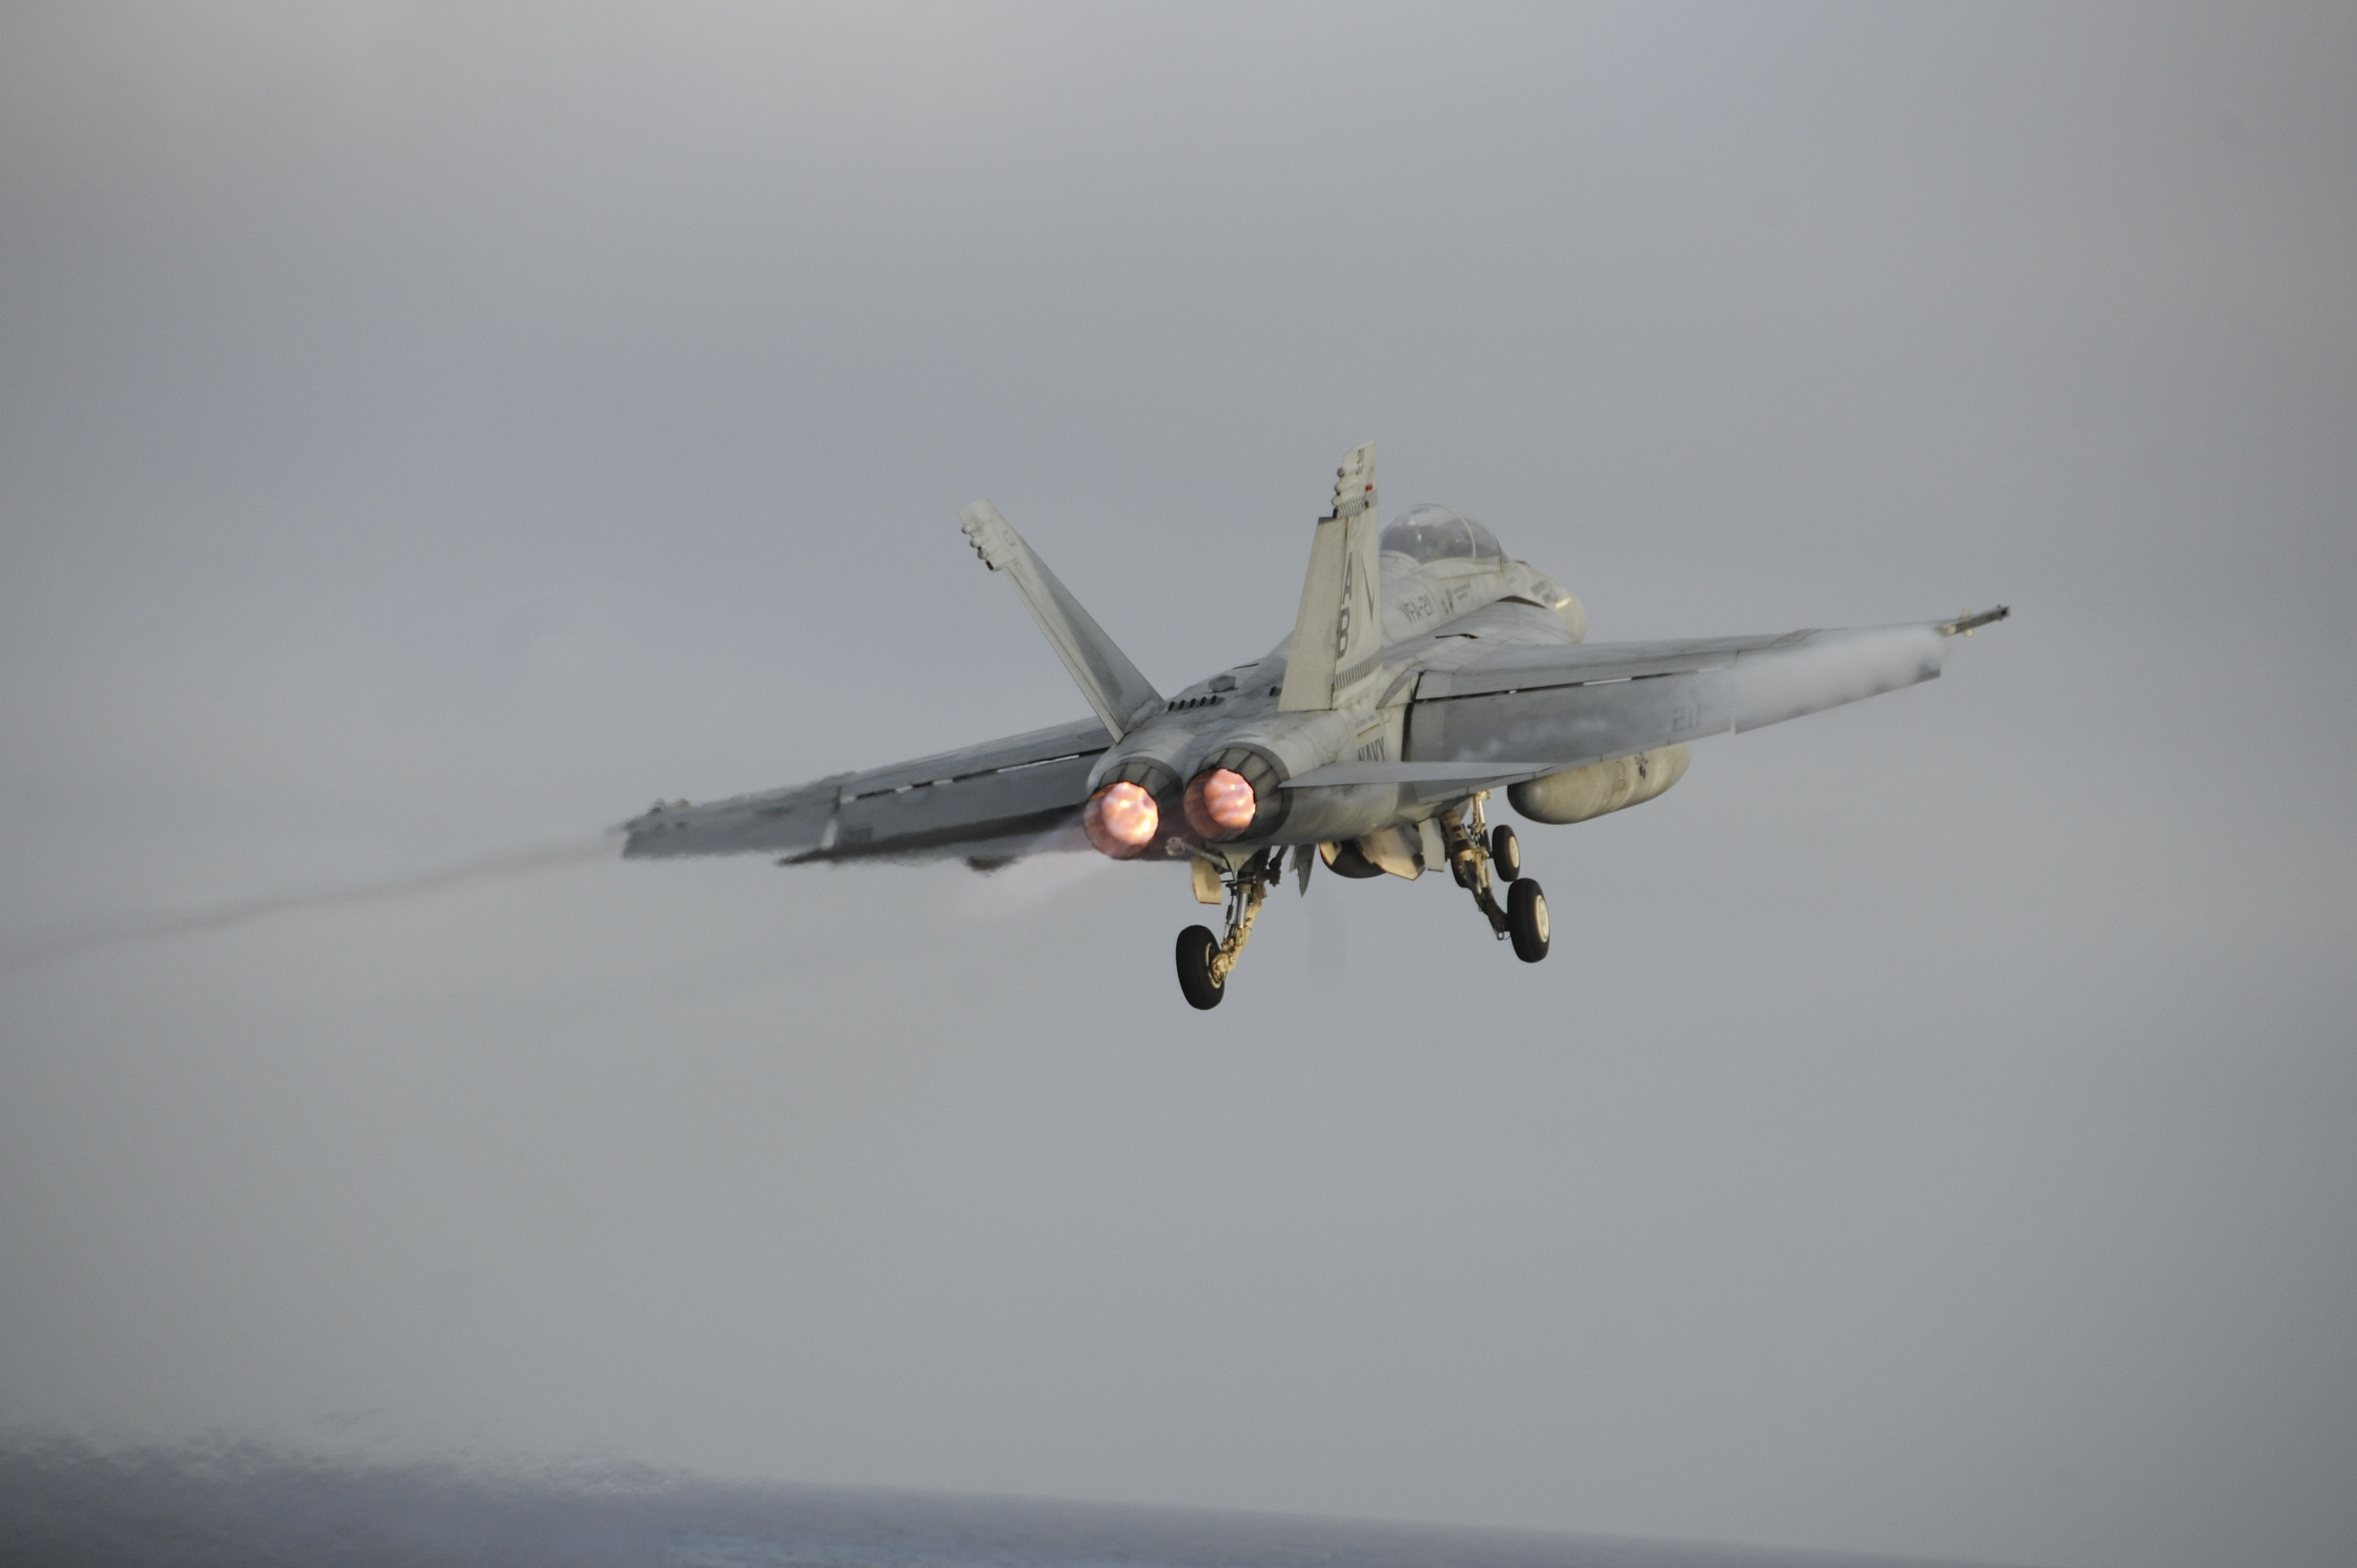 151121-N-NV908-508 PACIFIC OCEAN (Nov. 21, 2015) – An F/A-18F Super Hornet, assigned to the Checkmates of Strike Fighter Squadron (VFA) 211, launches off the flight deck of the aircraft carrier USS Theodore Roosevelt (CVN 71). The Checkmates,  along with all Carrier Air Wing One aircraft, are on their way home after completing an eight-month deployment as part of the Theodore Roosevelt Carrier Strike Group.  Theodore Roosevelt is operating in the U.S. 3rd Fleet area of operations as part of a worldwide deployment en route to its new homeport in San Diego to complete a three-carrier homeport shift. (U.S. Navy Photo by Mass Communication Specialist Seaman Chad M. Trudeau/Released)